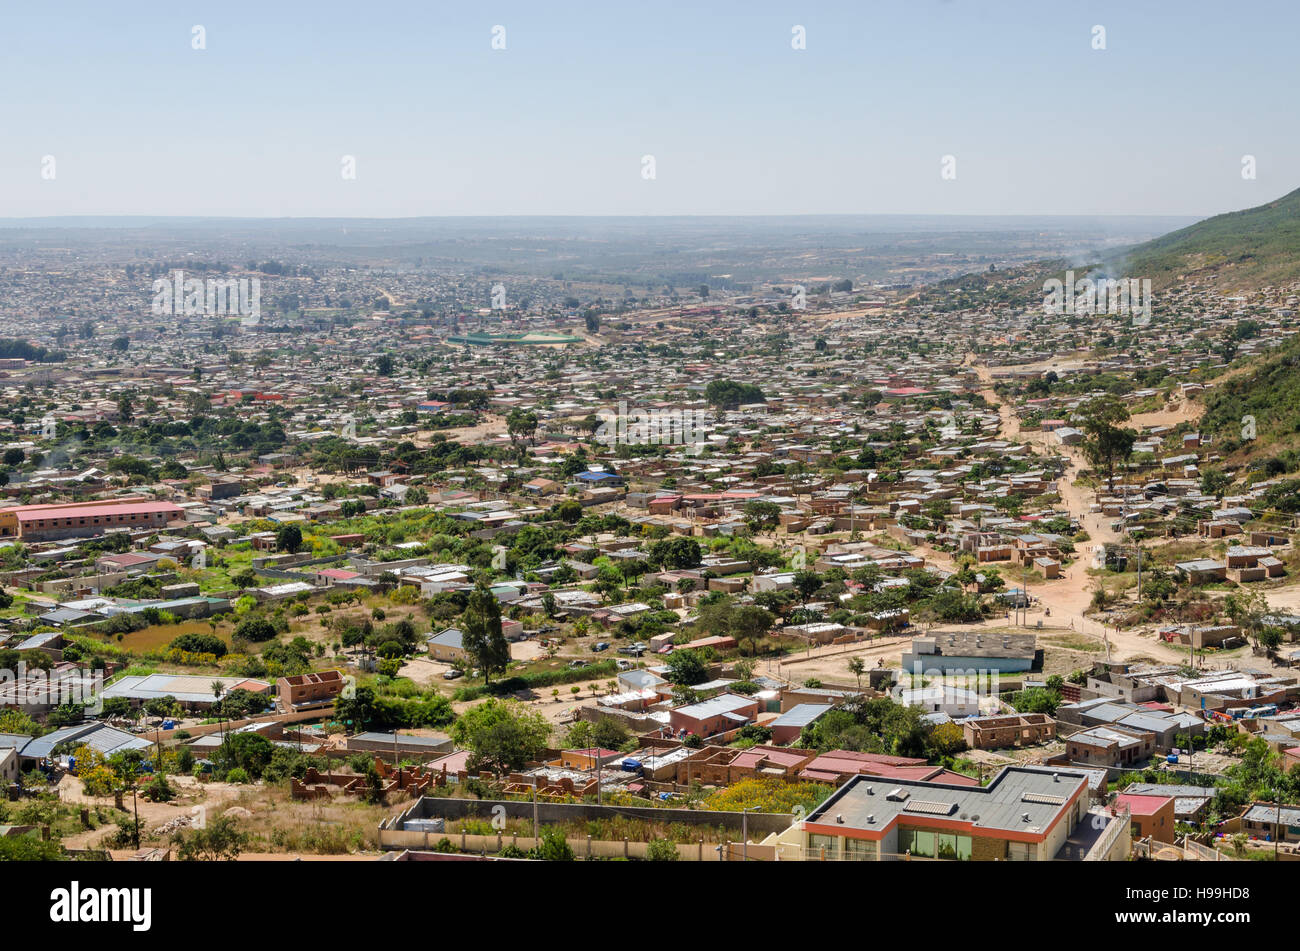 Aerial or rock view of African town Lubango in the interior of Angola. - Stock Image